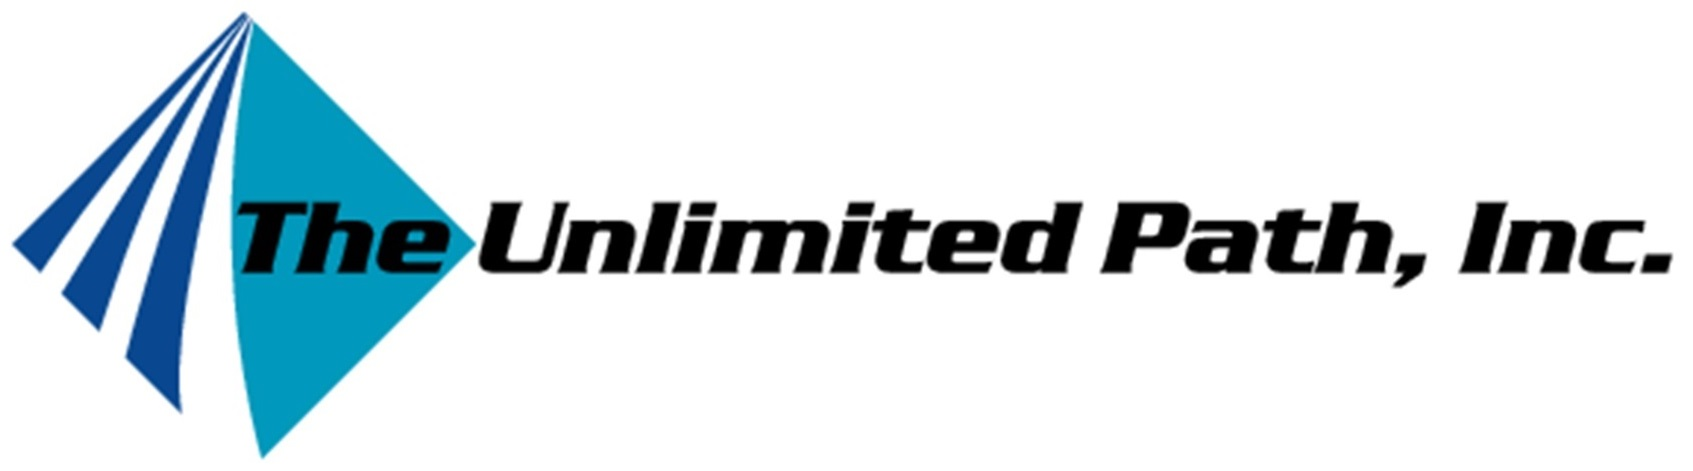 Unlimited_Logo.jpg